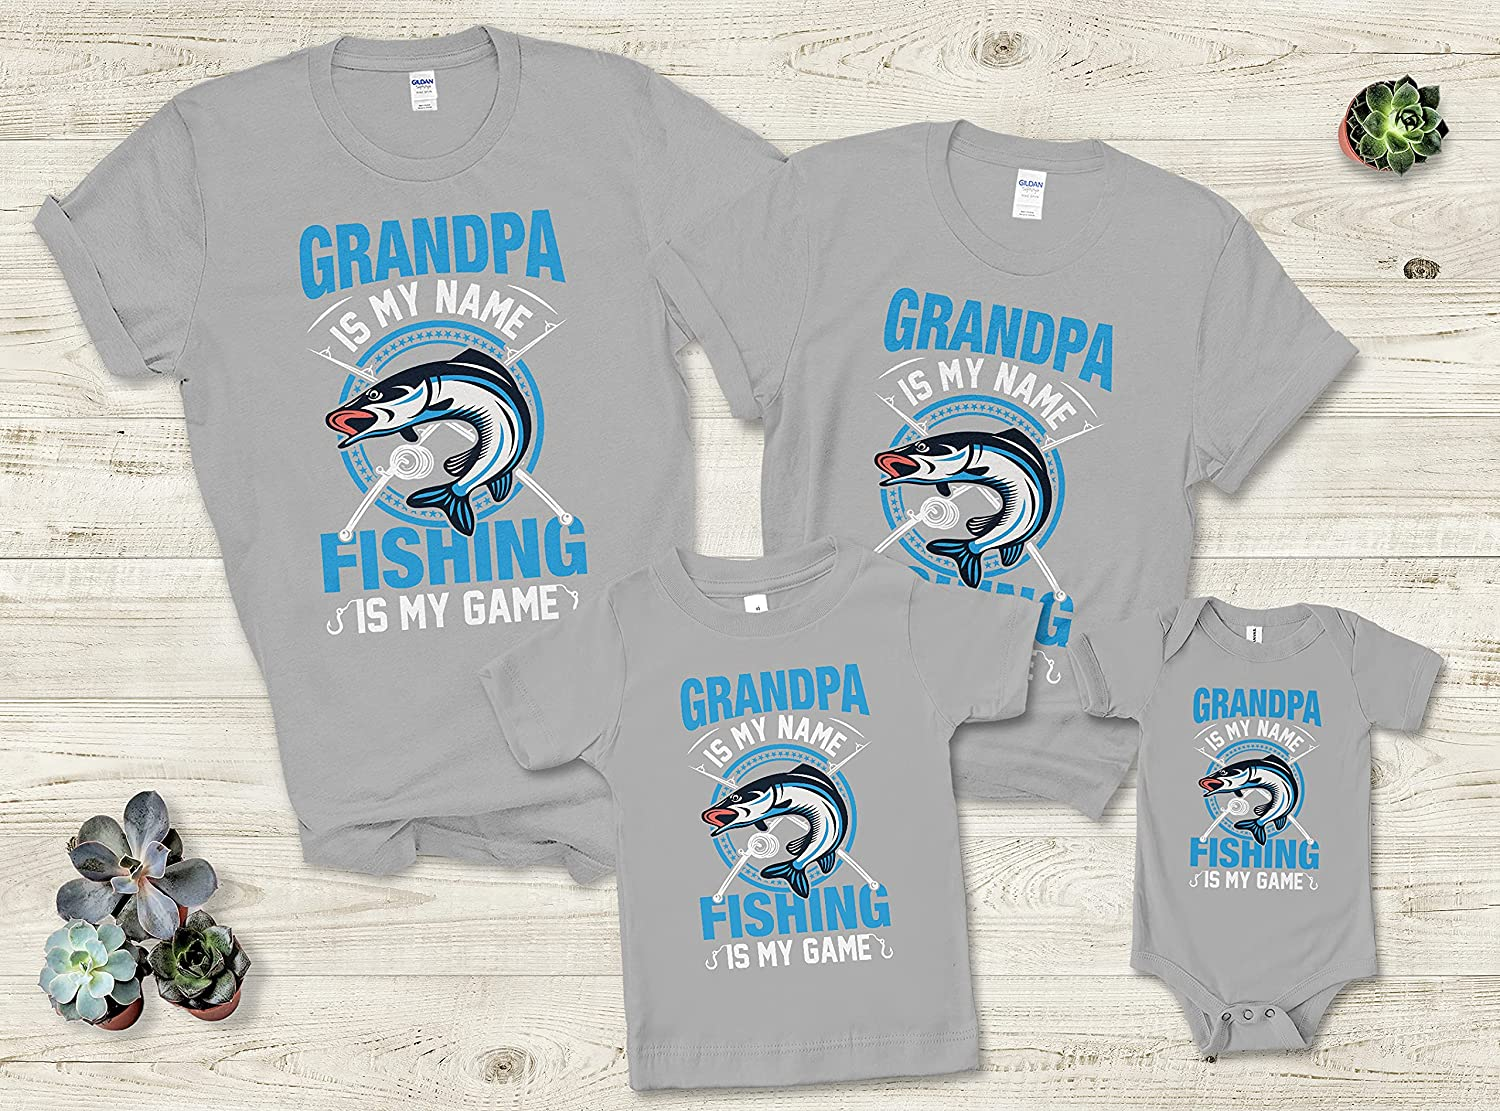 Father Mother Parents Day 2021 Grandpa Is My Name Custom Personalized Family T-Shirt Gift